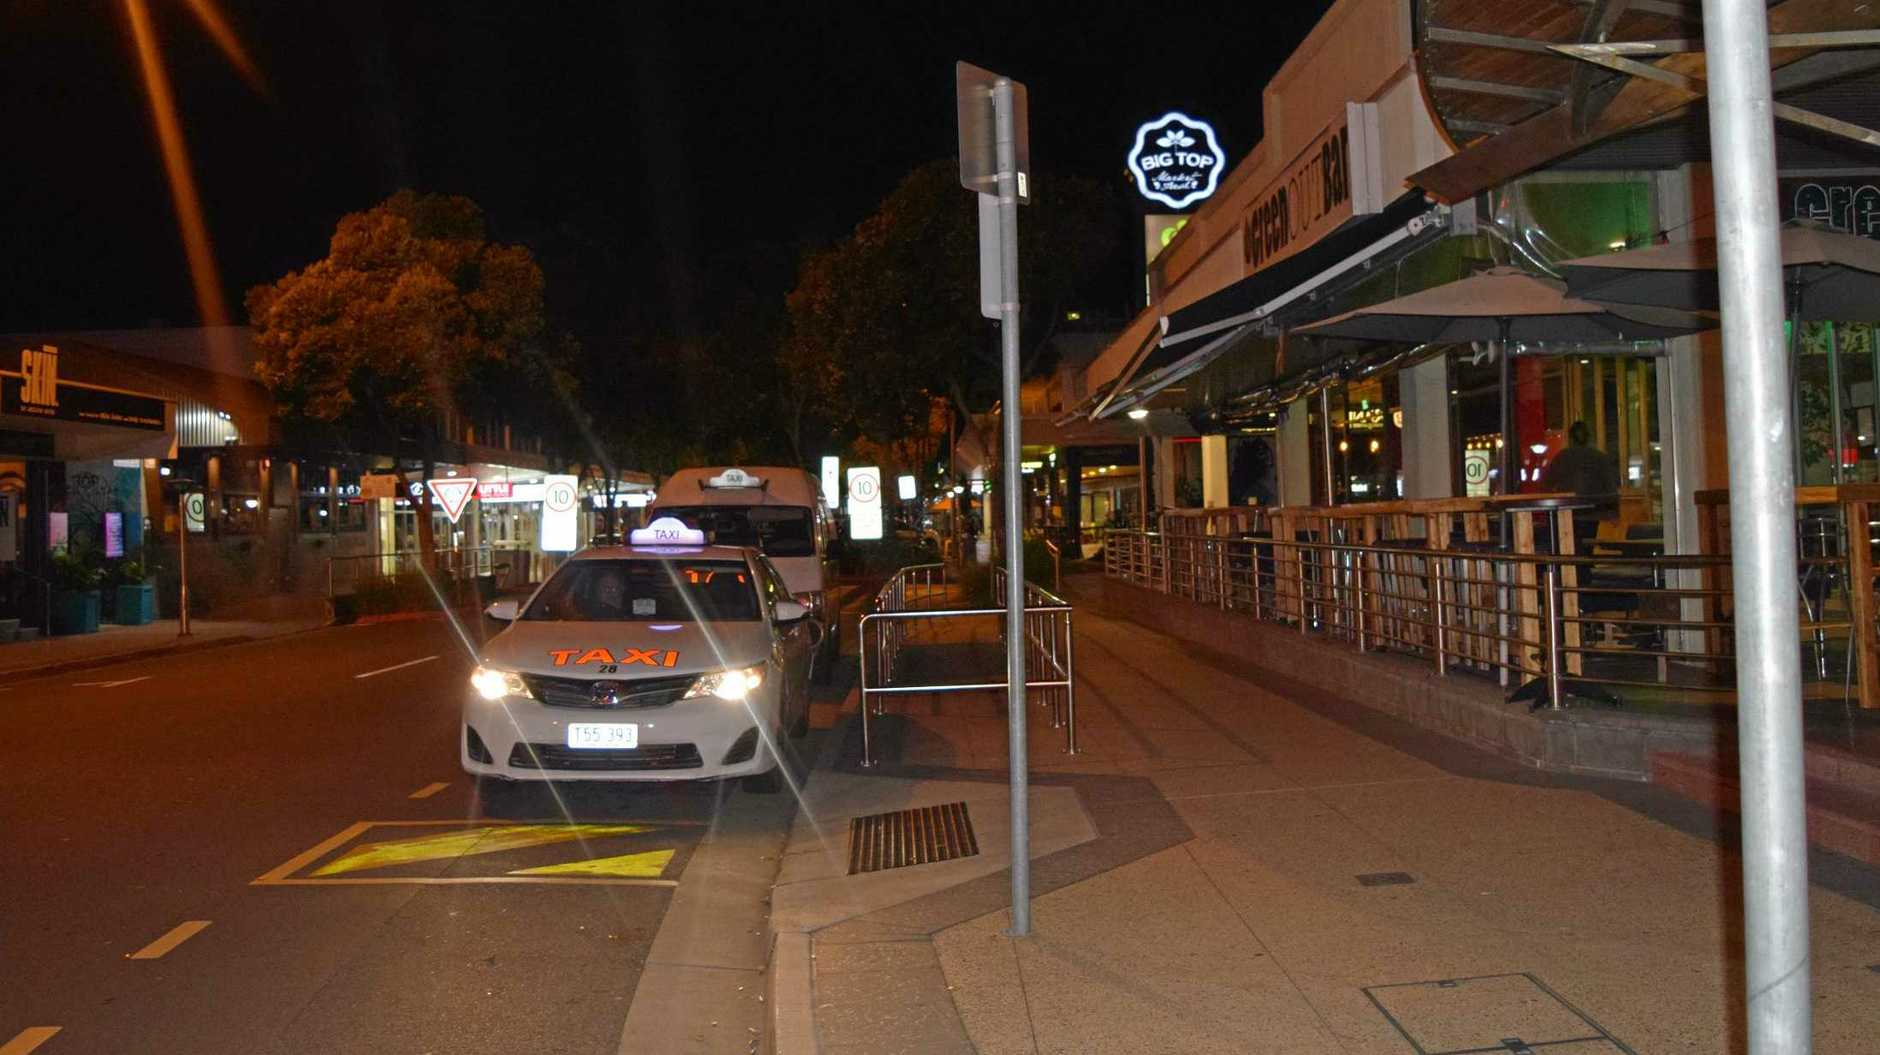 A major upgrade to safety infrastructure at the Ocean St precinct is being planned by Cr Jason O'Pray.